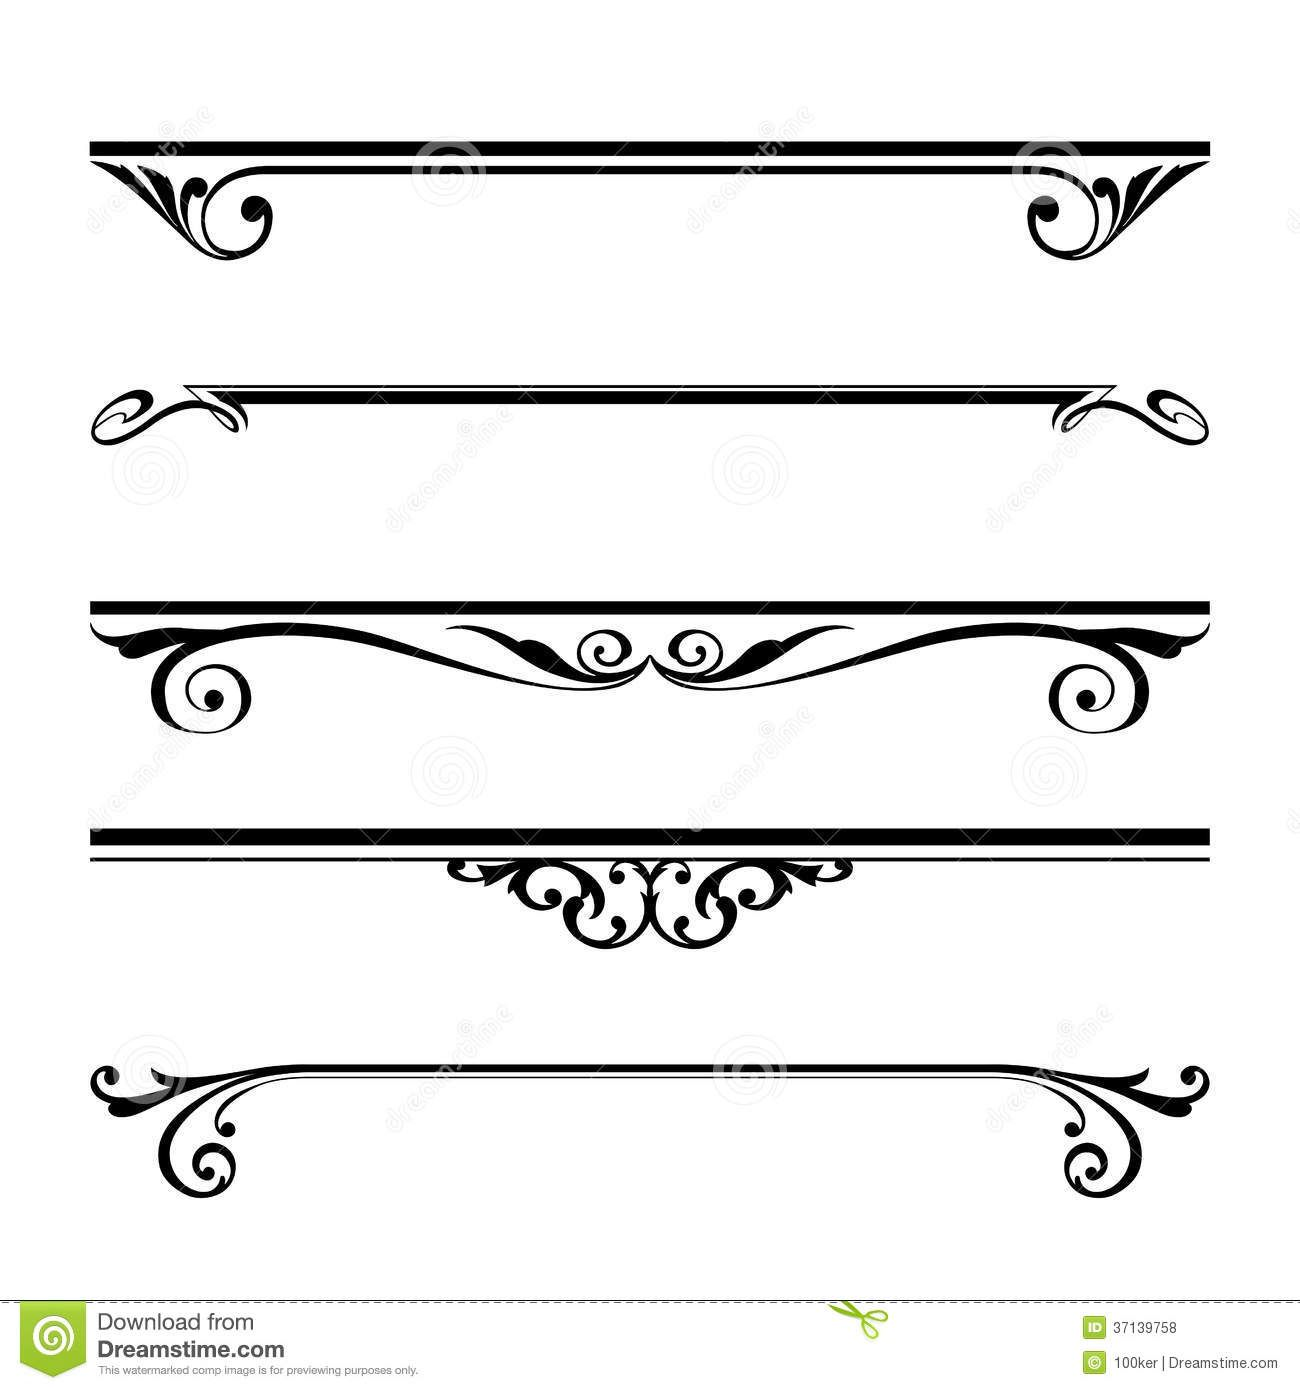 Decorative Elements, Border And Page Rules Royalty Free Stock Photos.